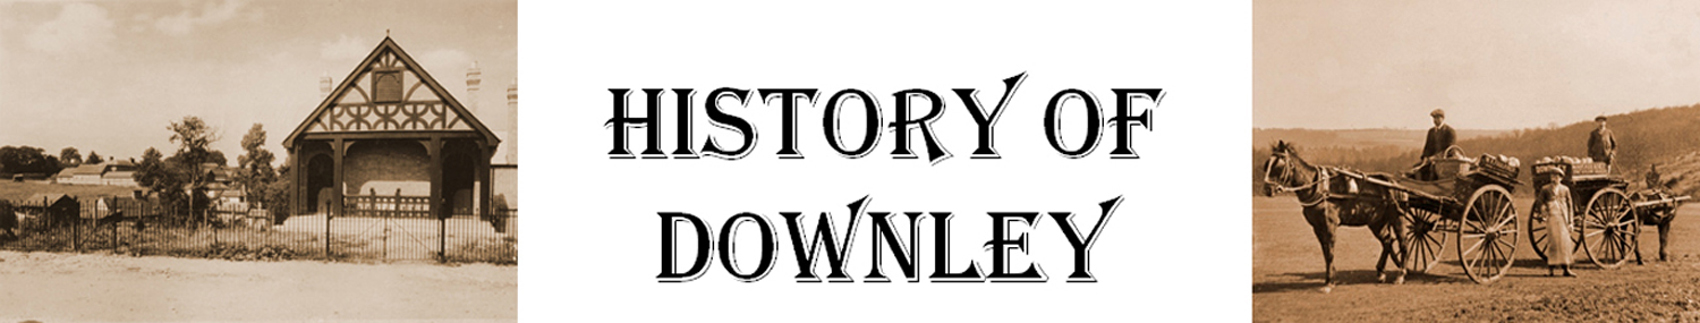 History of Downley